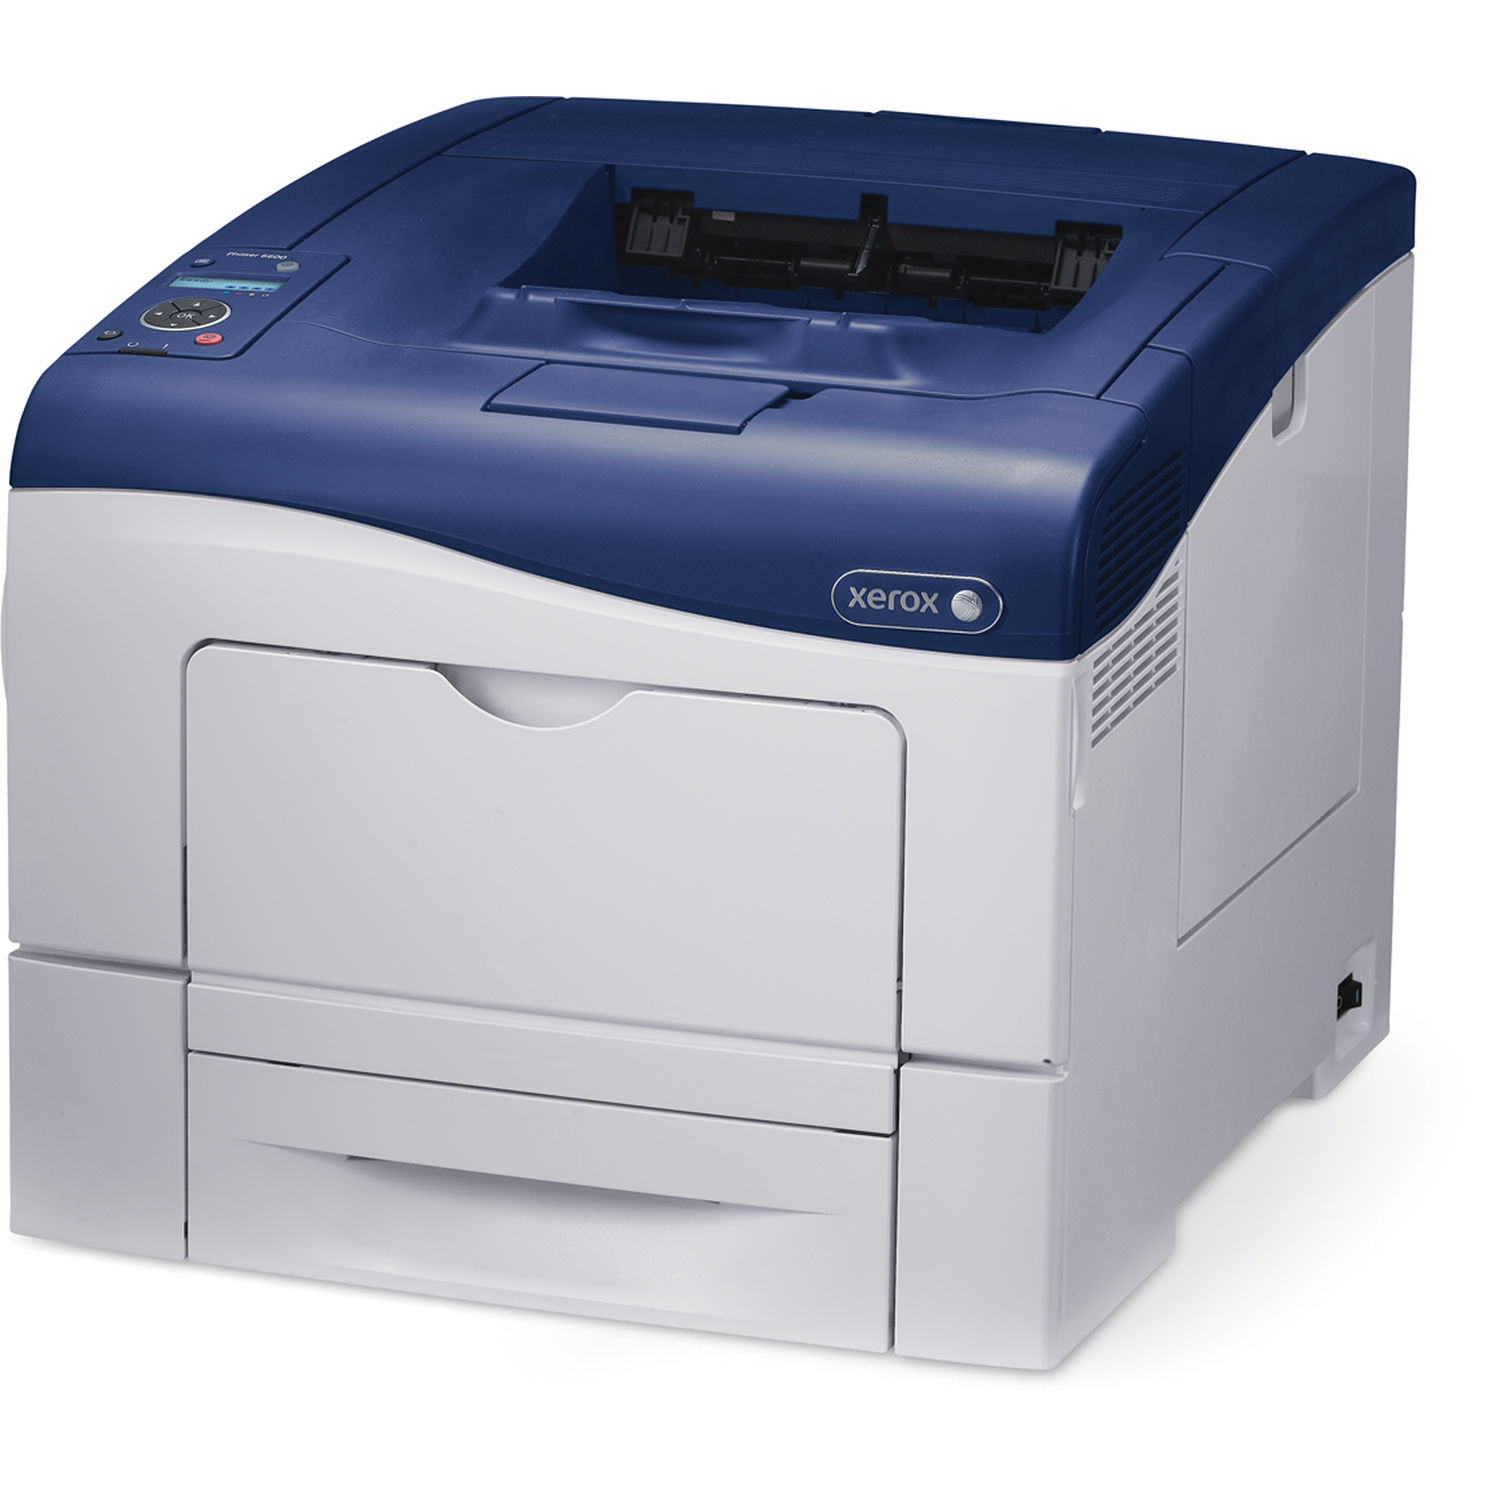 Xerox 1010 ST Digital Printer PostScript/PCL Driver for Mac